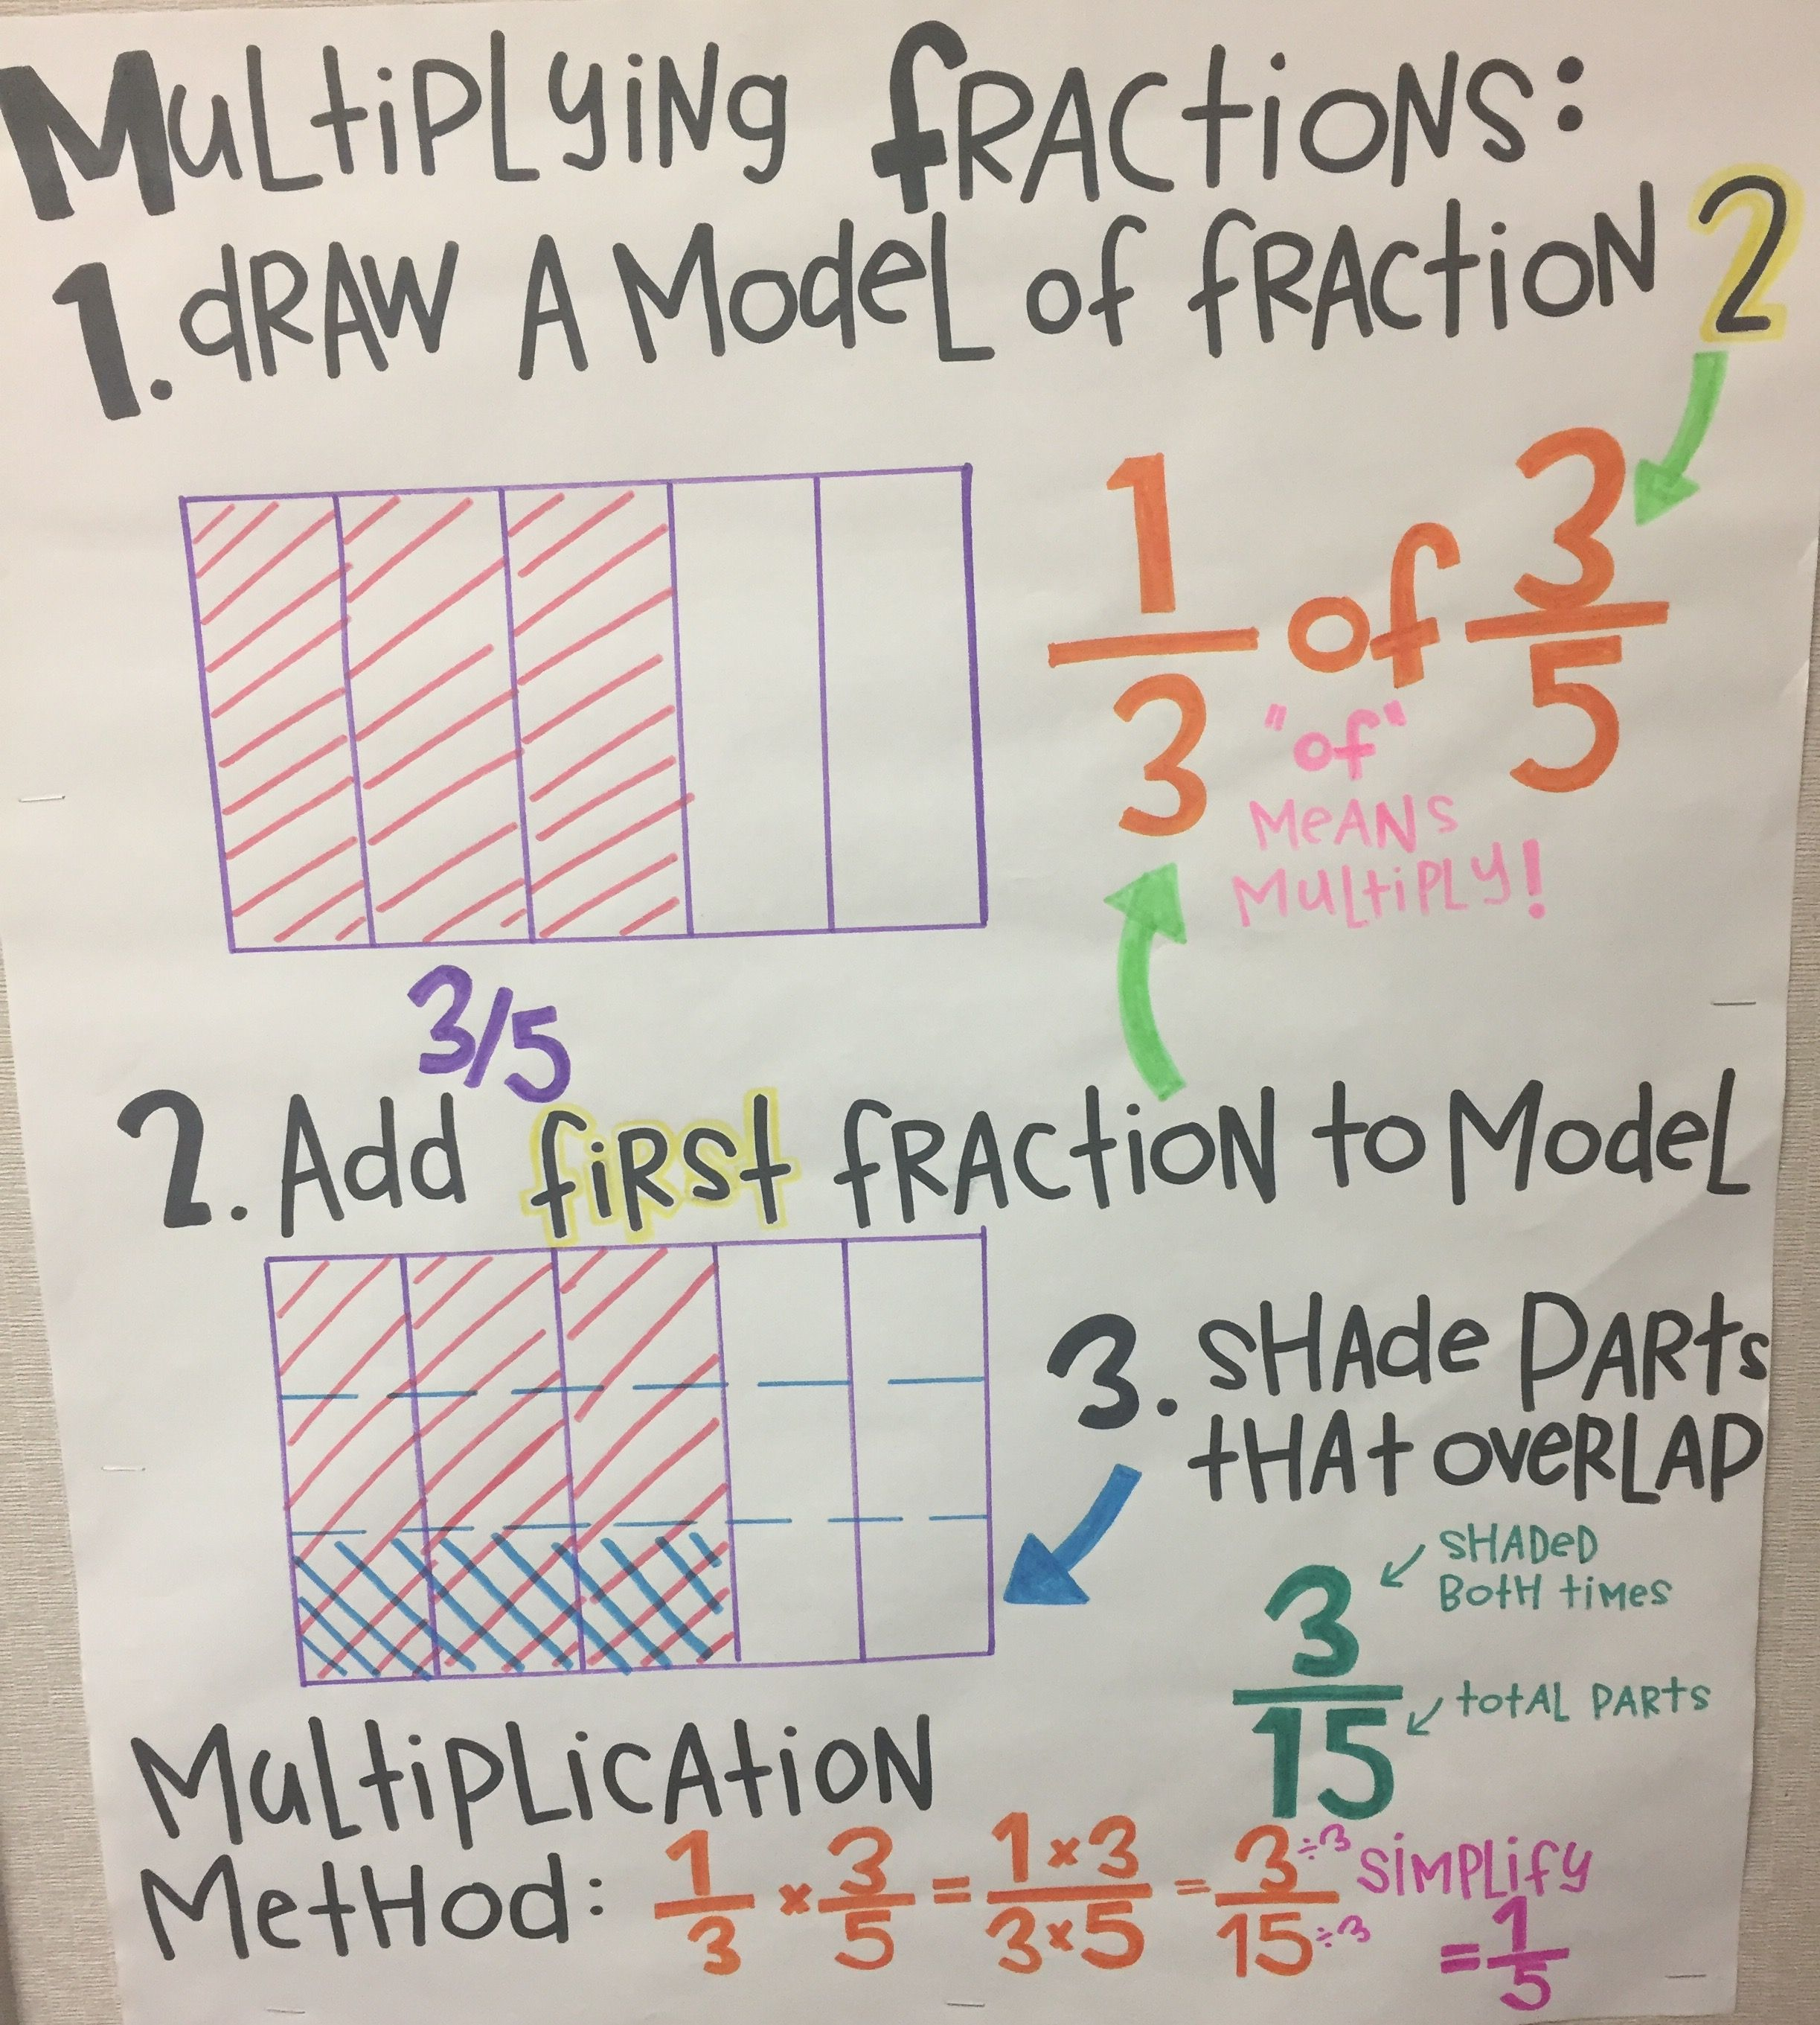 Multiplying Fractions Fifth Grade Common Core Anchor Chart With Modeling Math Anchor Charts Fifth Grade Math Multiplying Fractions